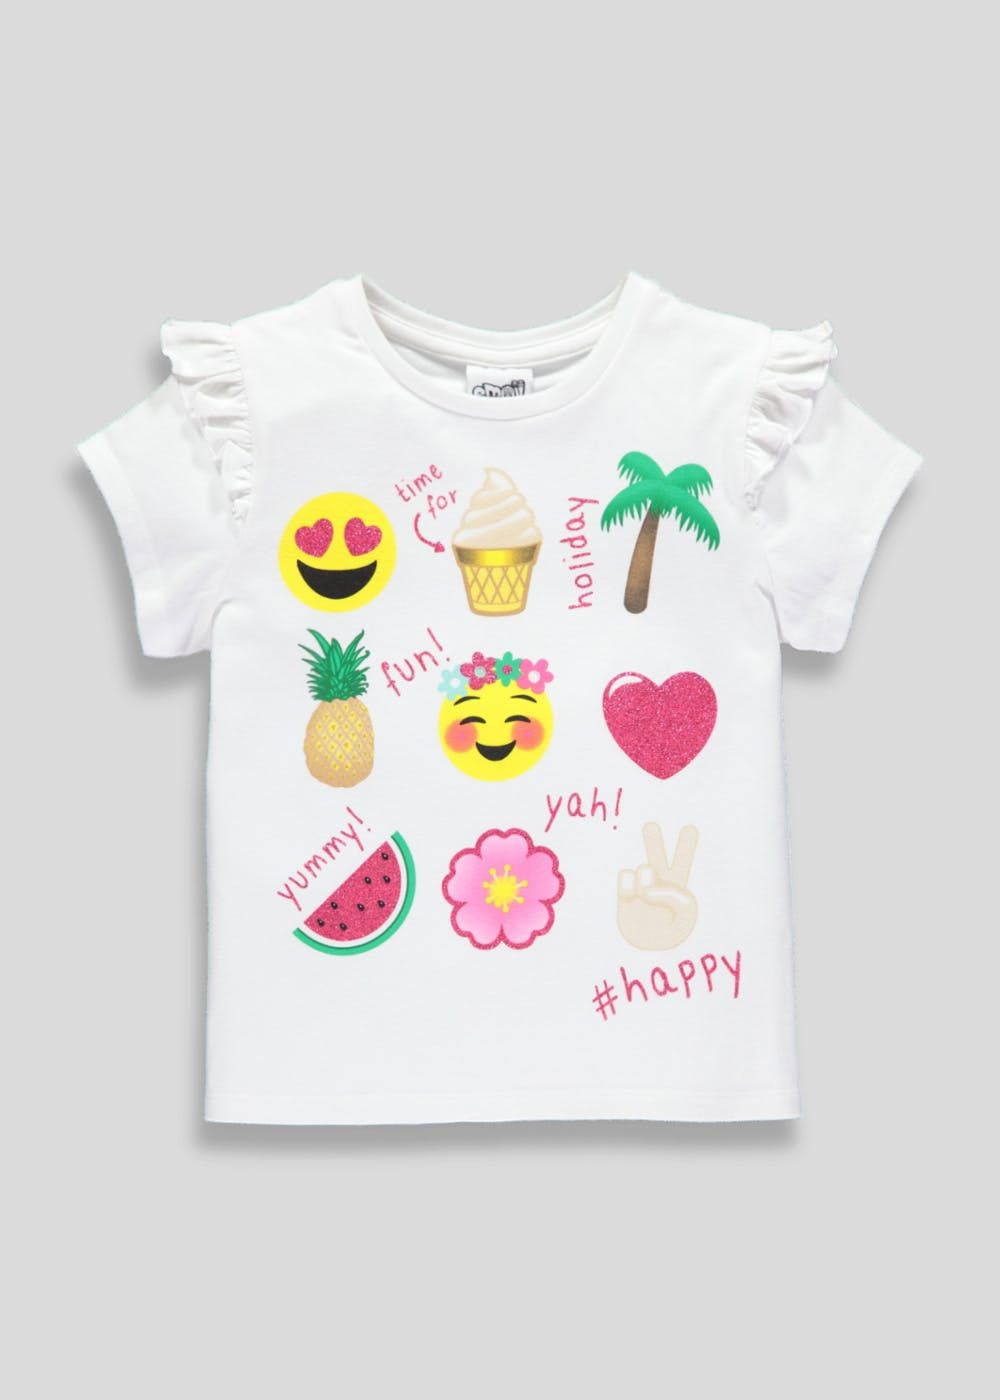 4791a86753ee Womens, Mens, Kids & Homeware Online in 2019 | summer party | Girl ...